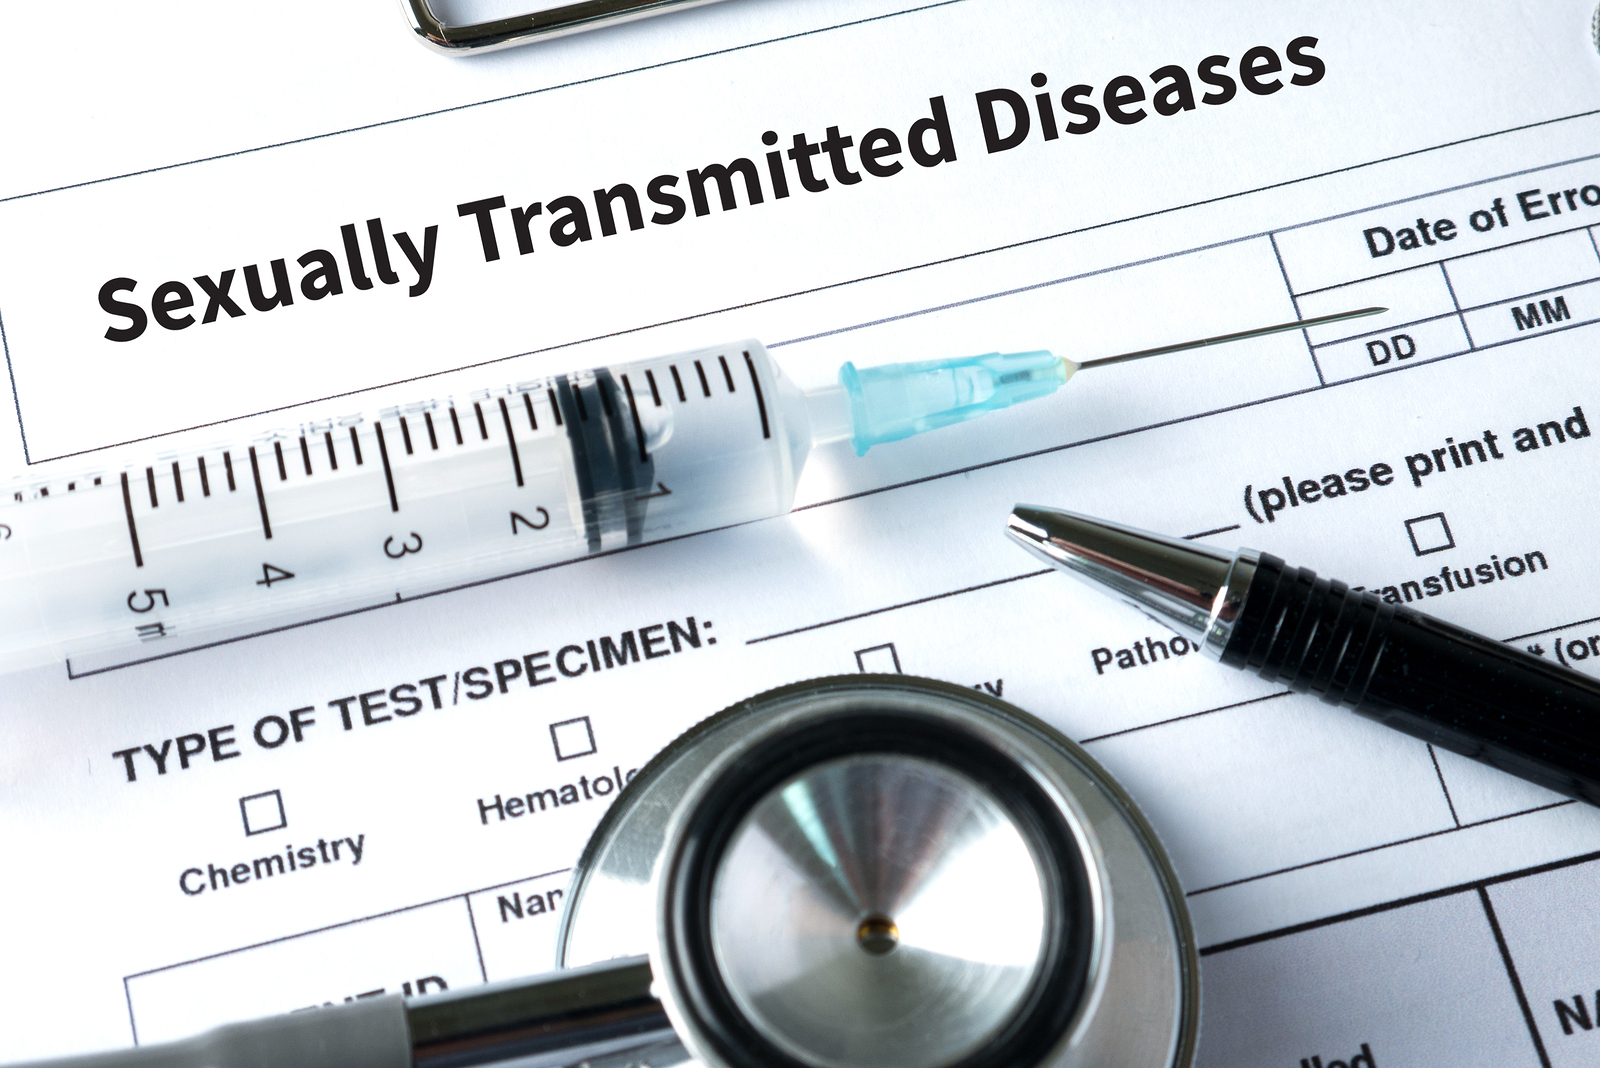 County STD rates rise for third consecutive year